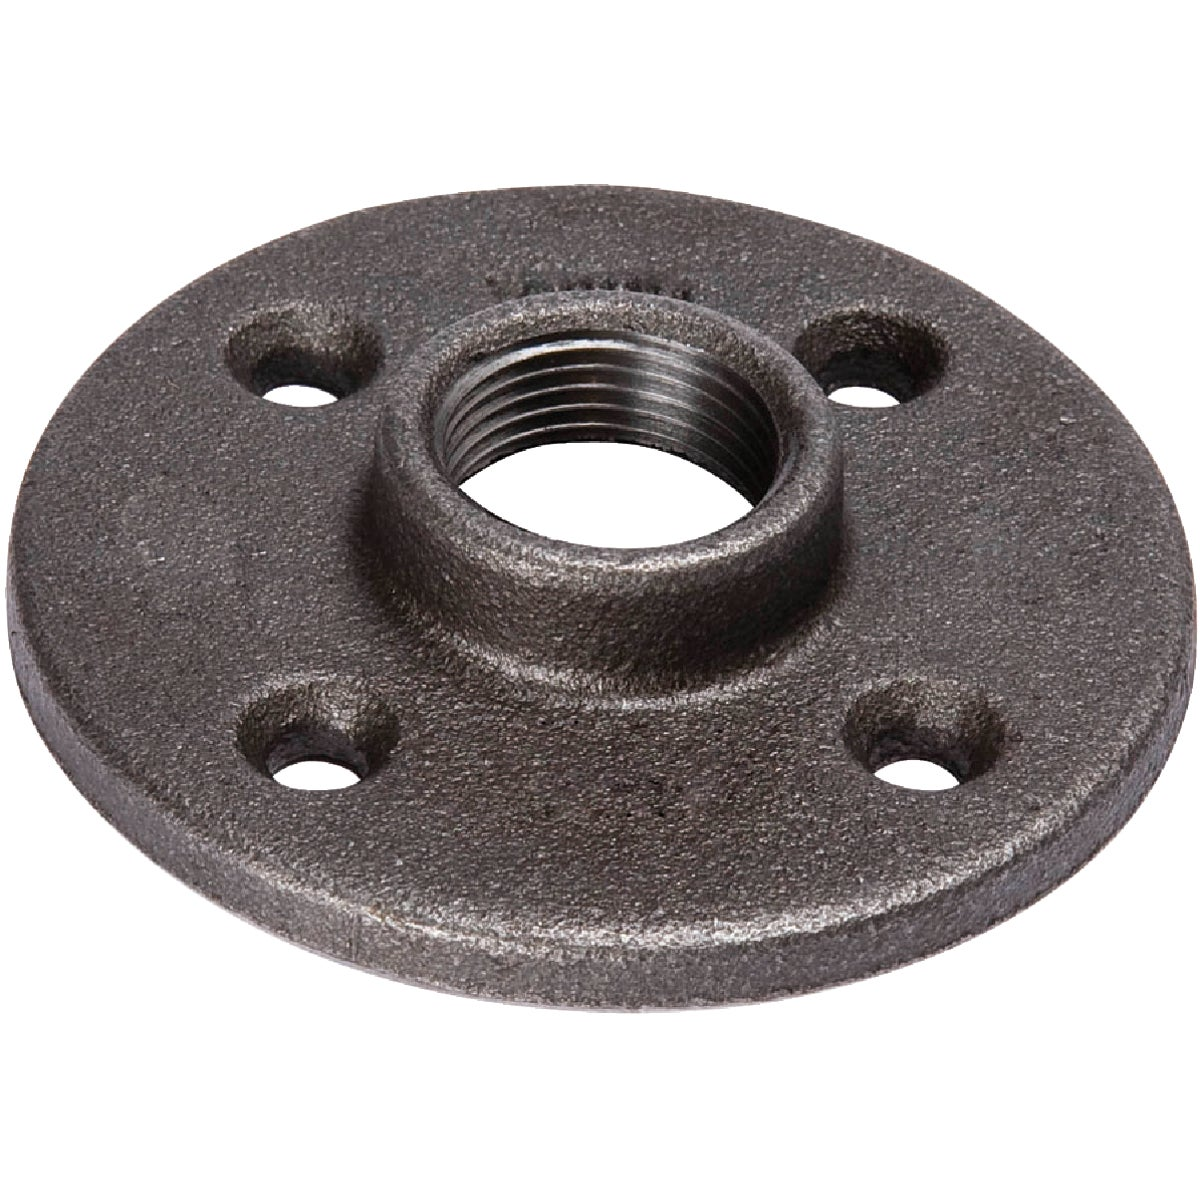 "1"" BLACK FLANGE - 521-605BG by Mueller B K"